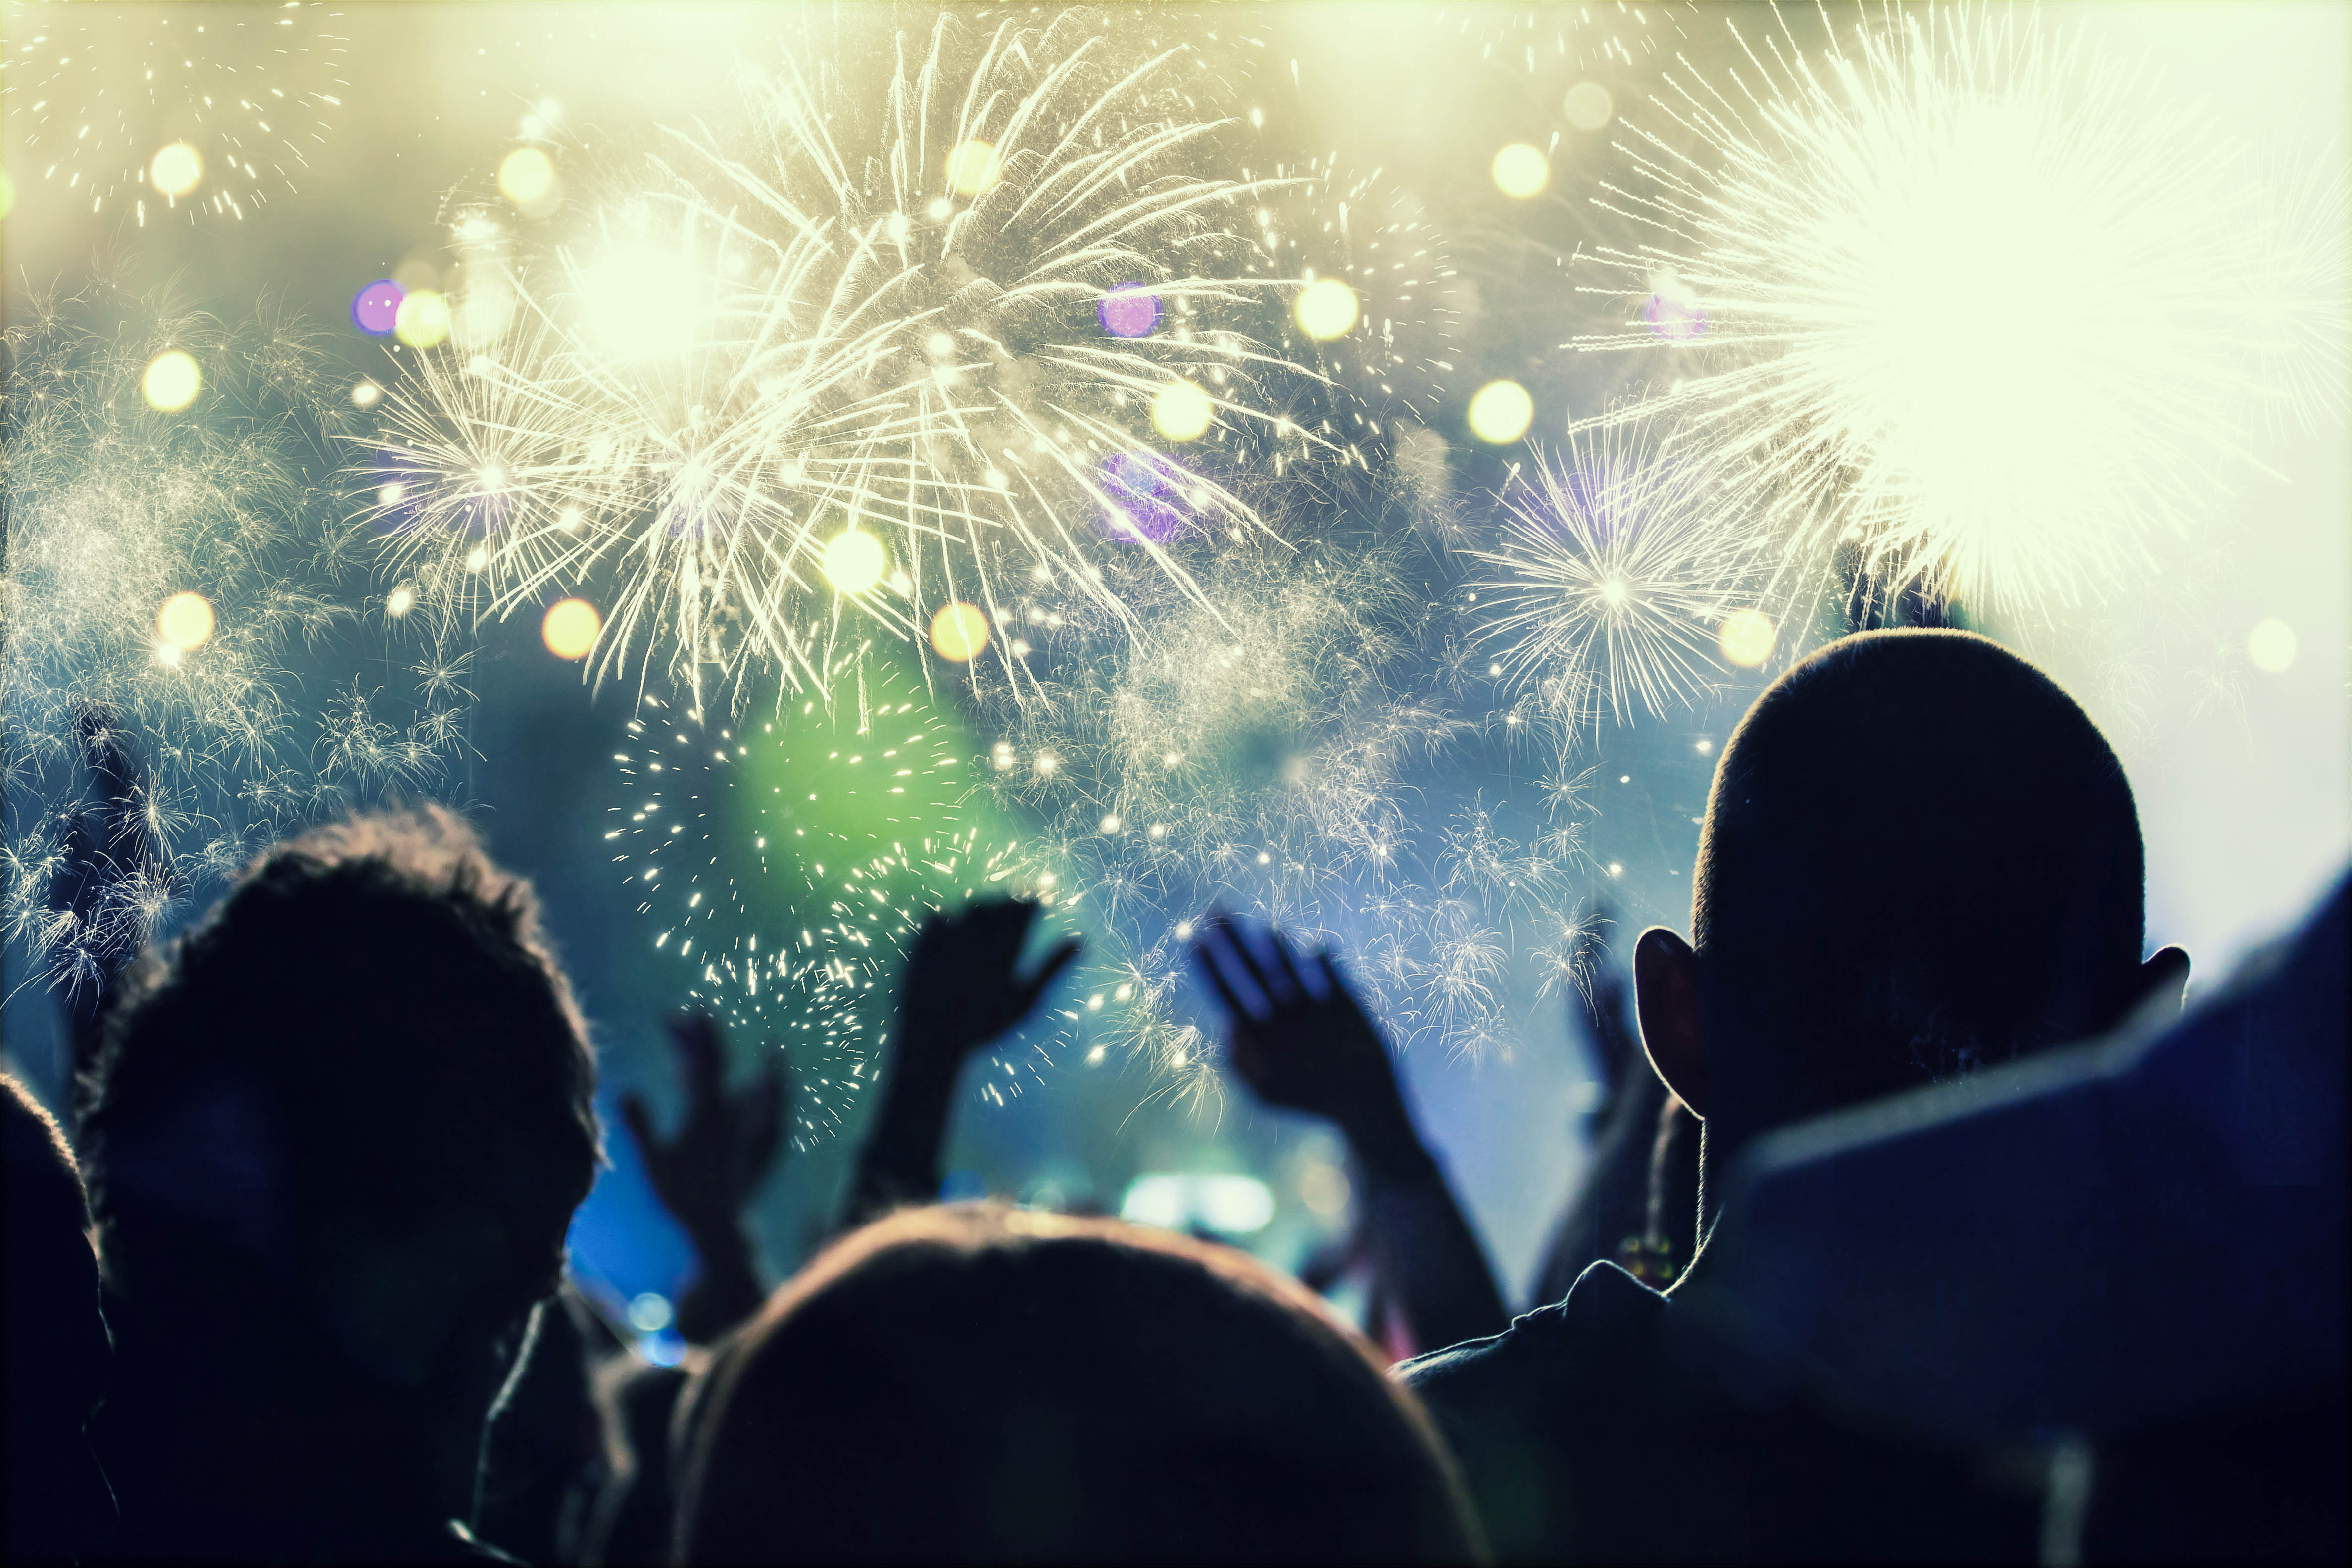 Cheering crowd and fireworks at New Year's Eve - people celbrating on open air